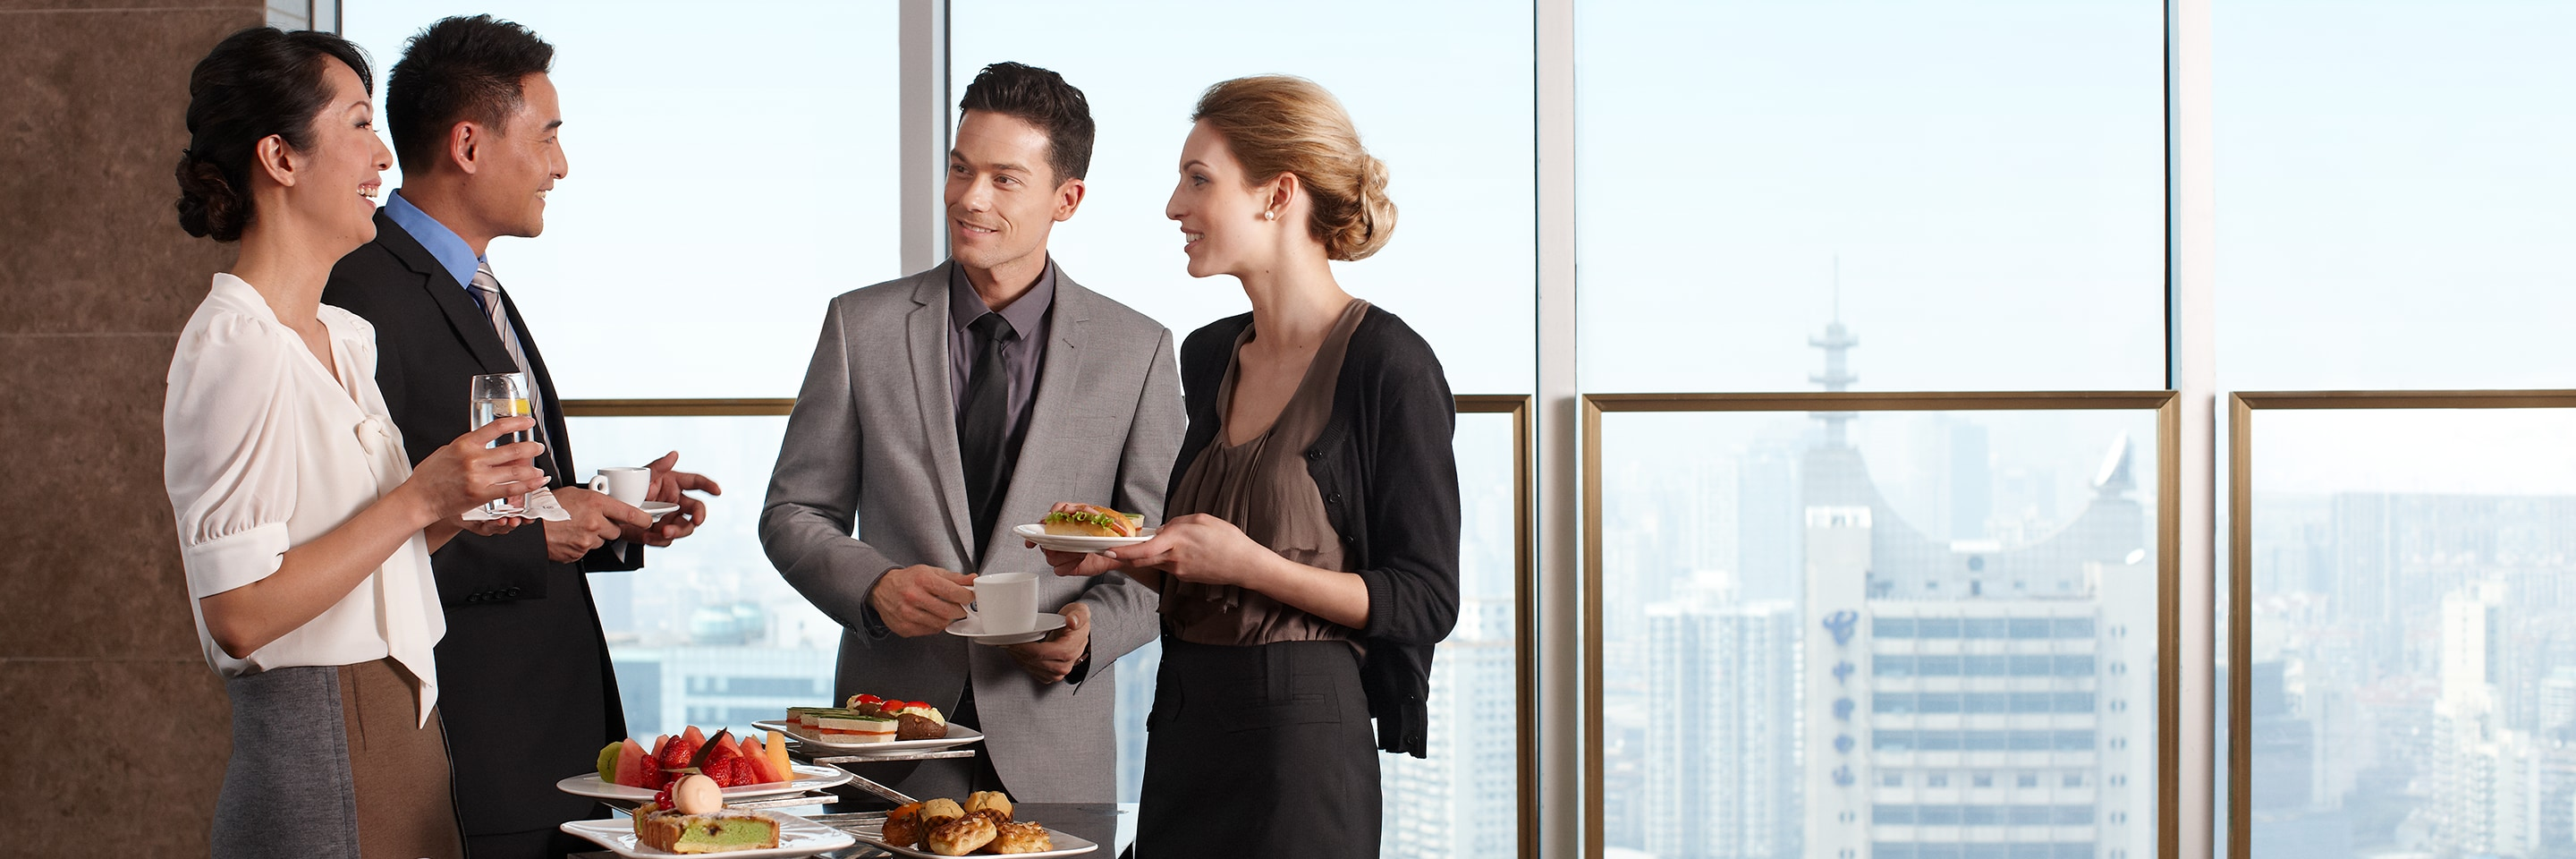 Four businessmen and women talk by a food display